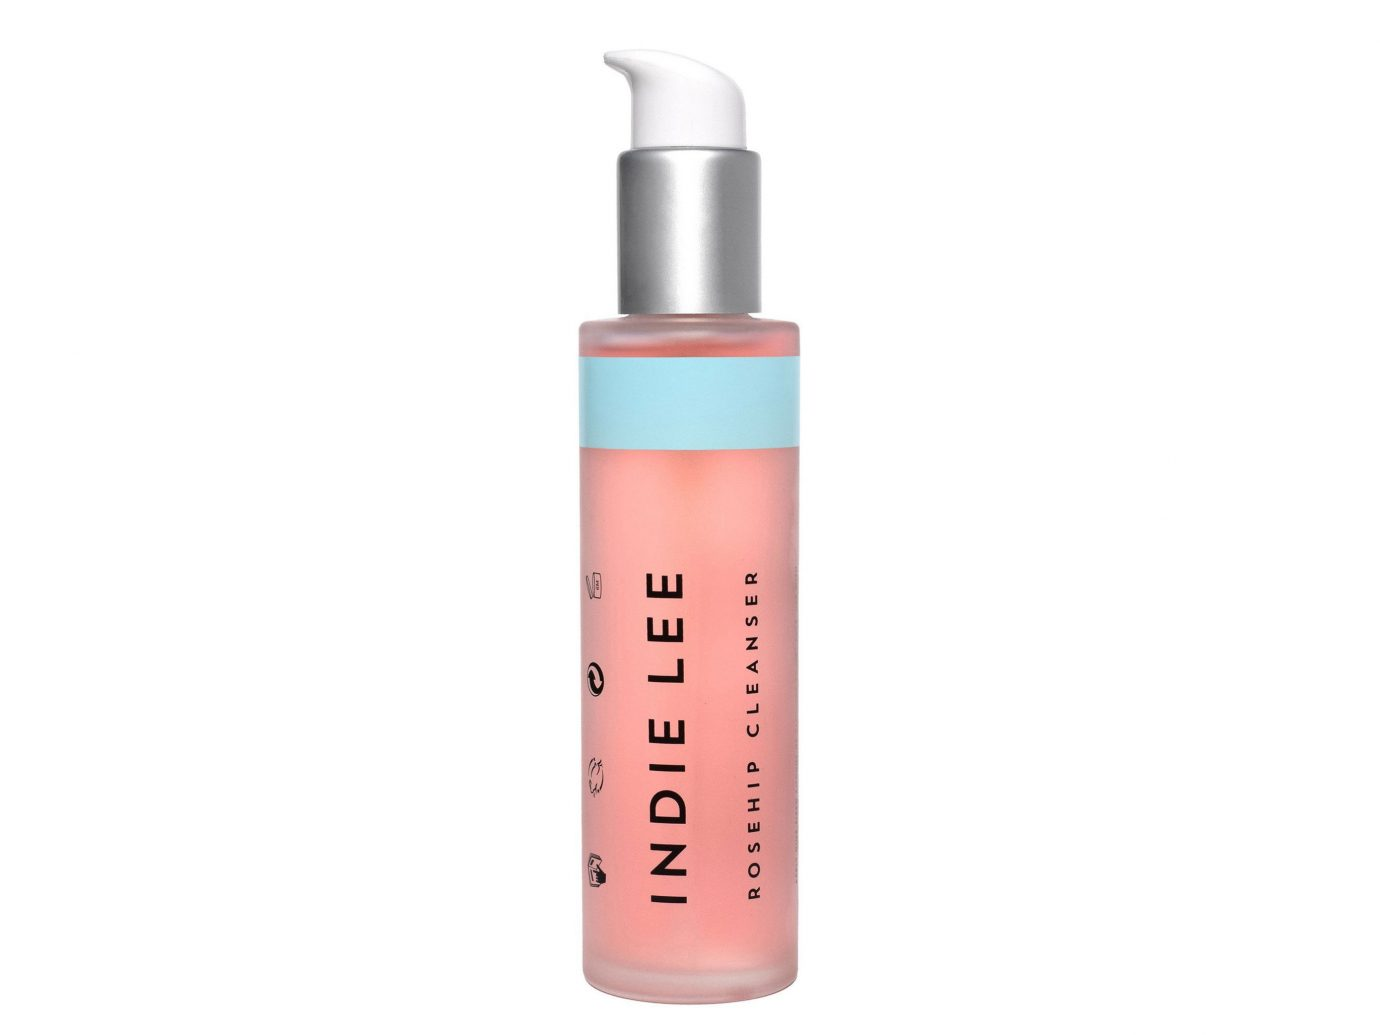 Health + Wellness Travel Shop toiletry Beauty product skin care cosmetics liquid health & beauty